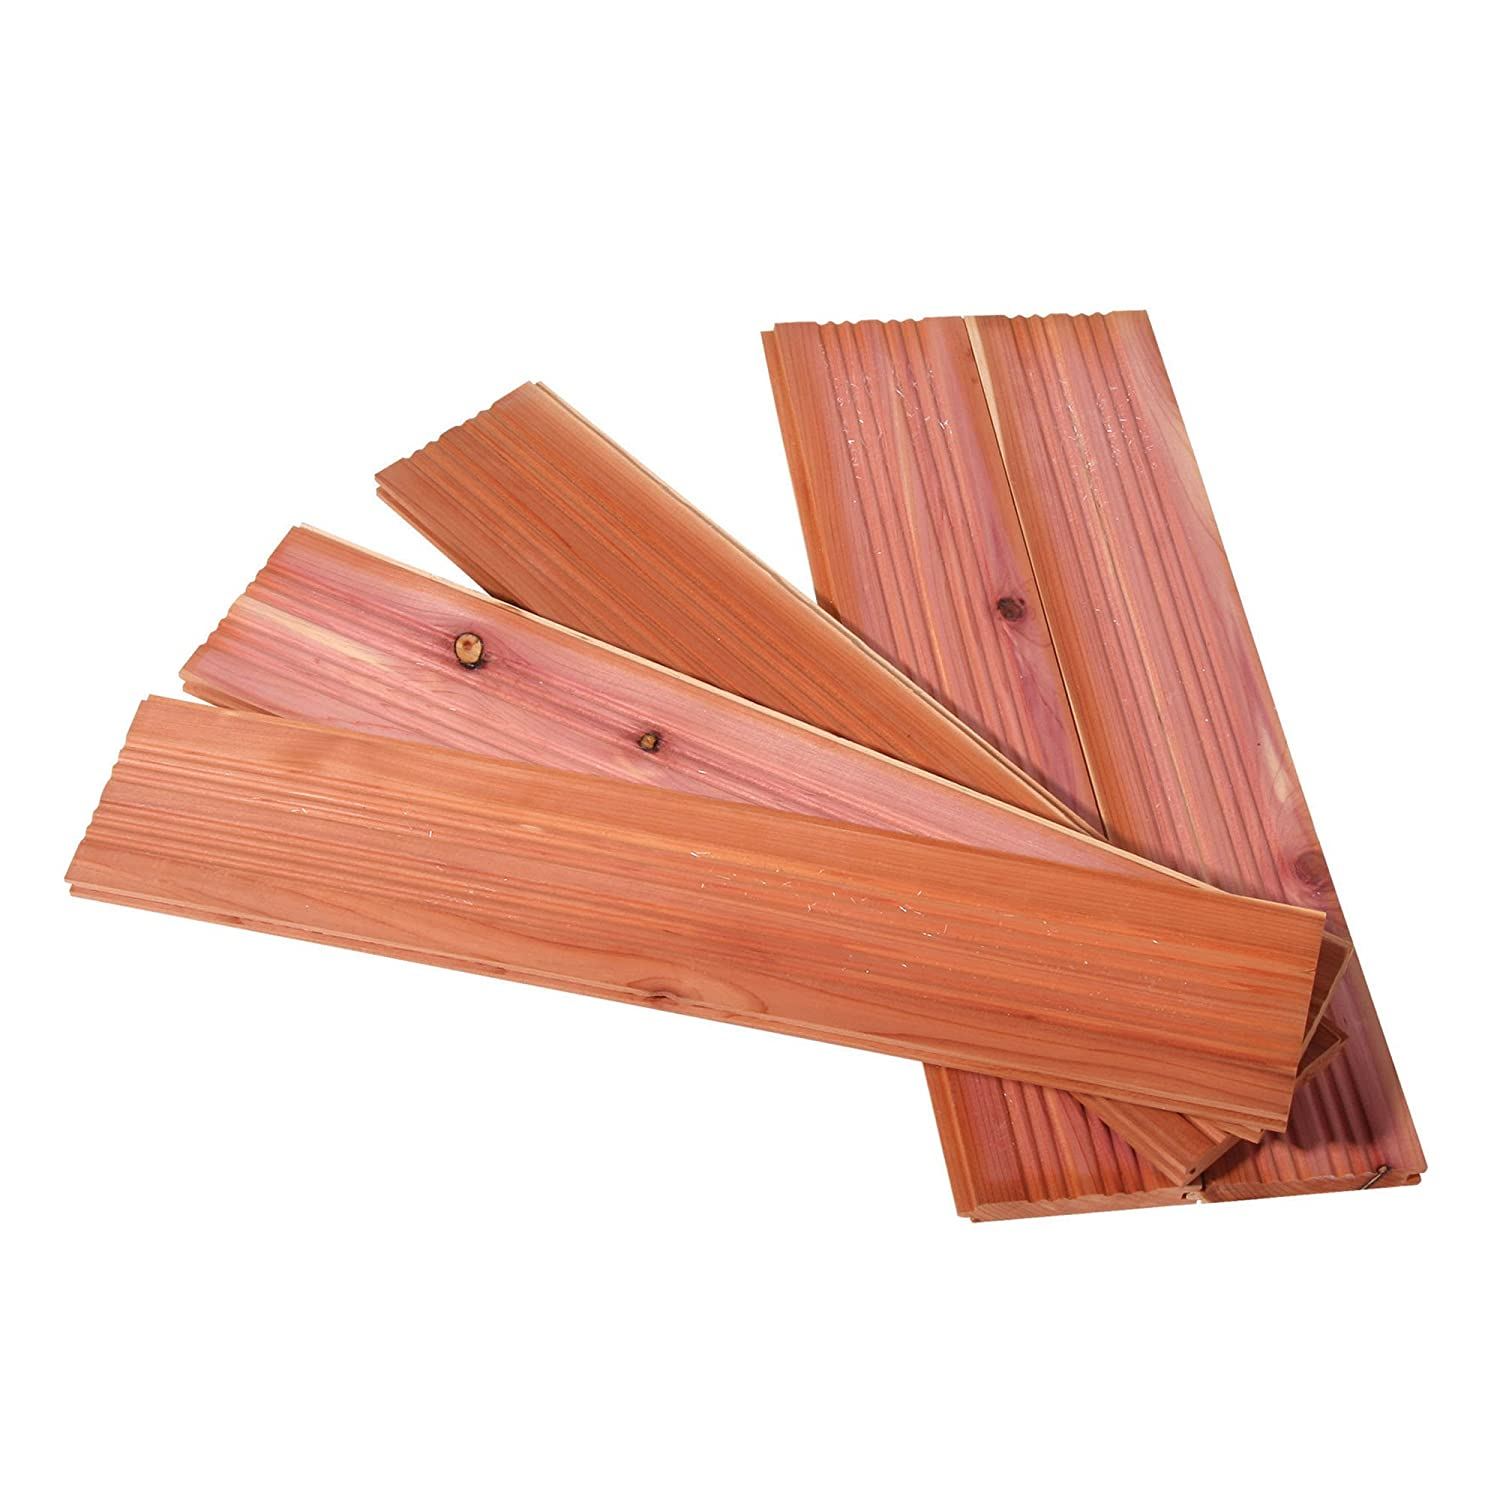 CedarFresh 25003-1 Interlocking Cedar Wood Plank Drawer Liners | Set of 5 Household Essentials